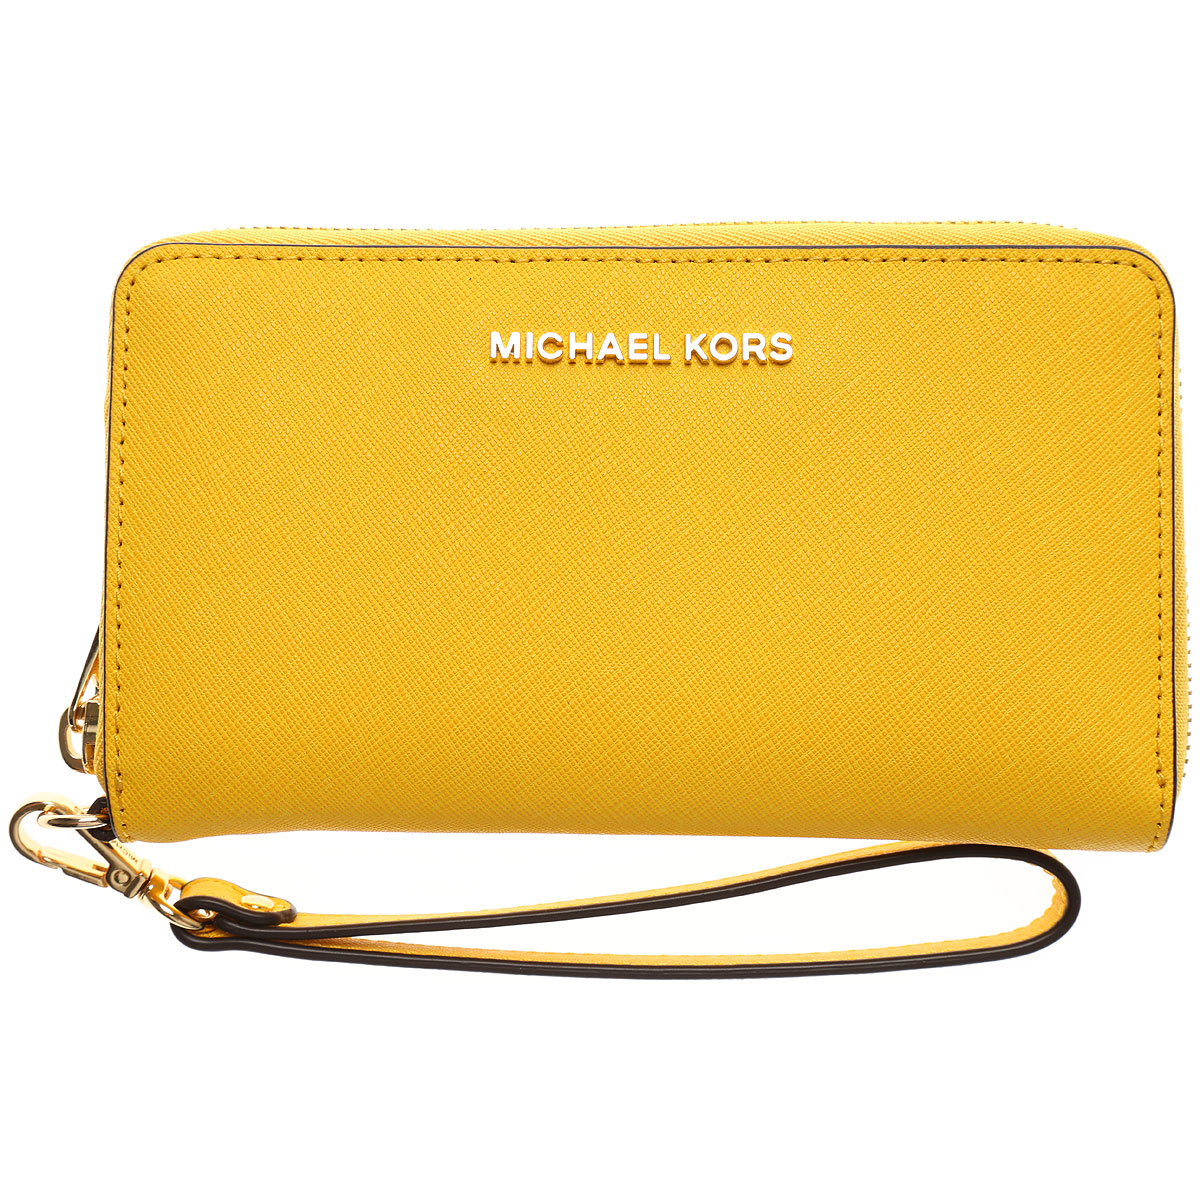 e1392ae487d8 ... Michael Kors Wallets. FULL SCREEN. 1) Drag to view product 2) Double  click to start rotation